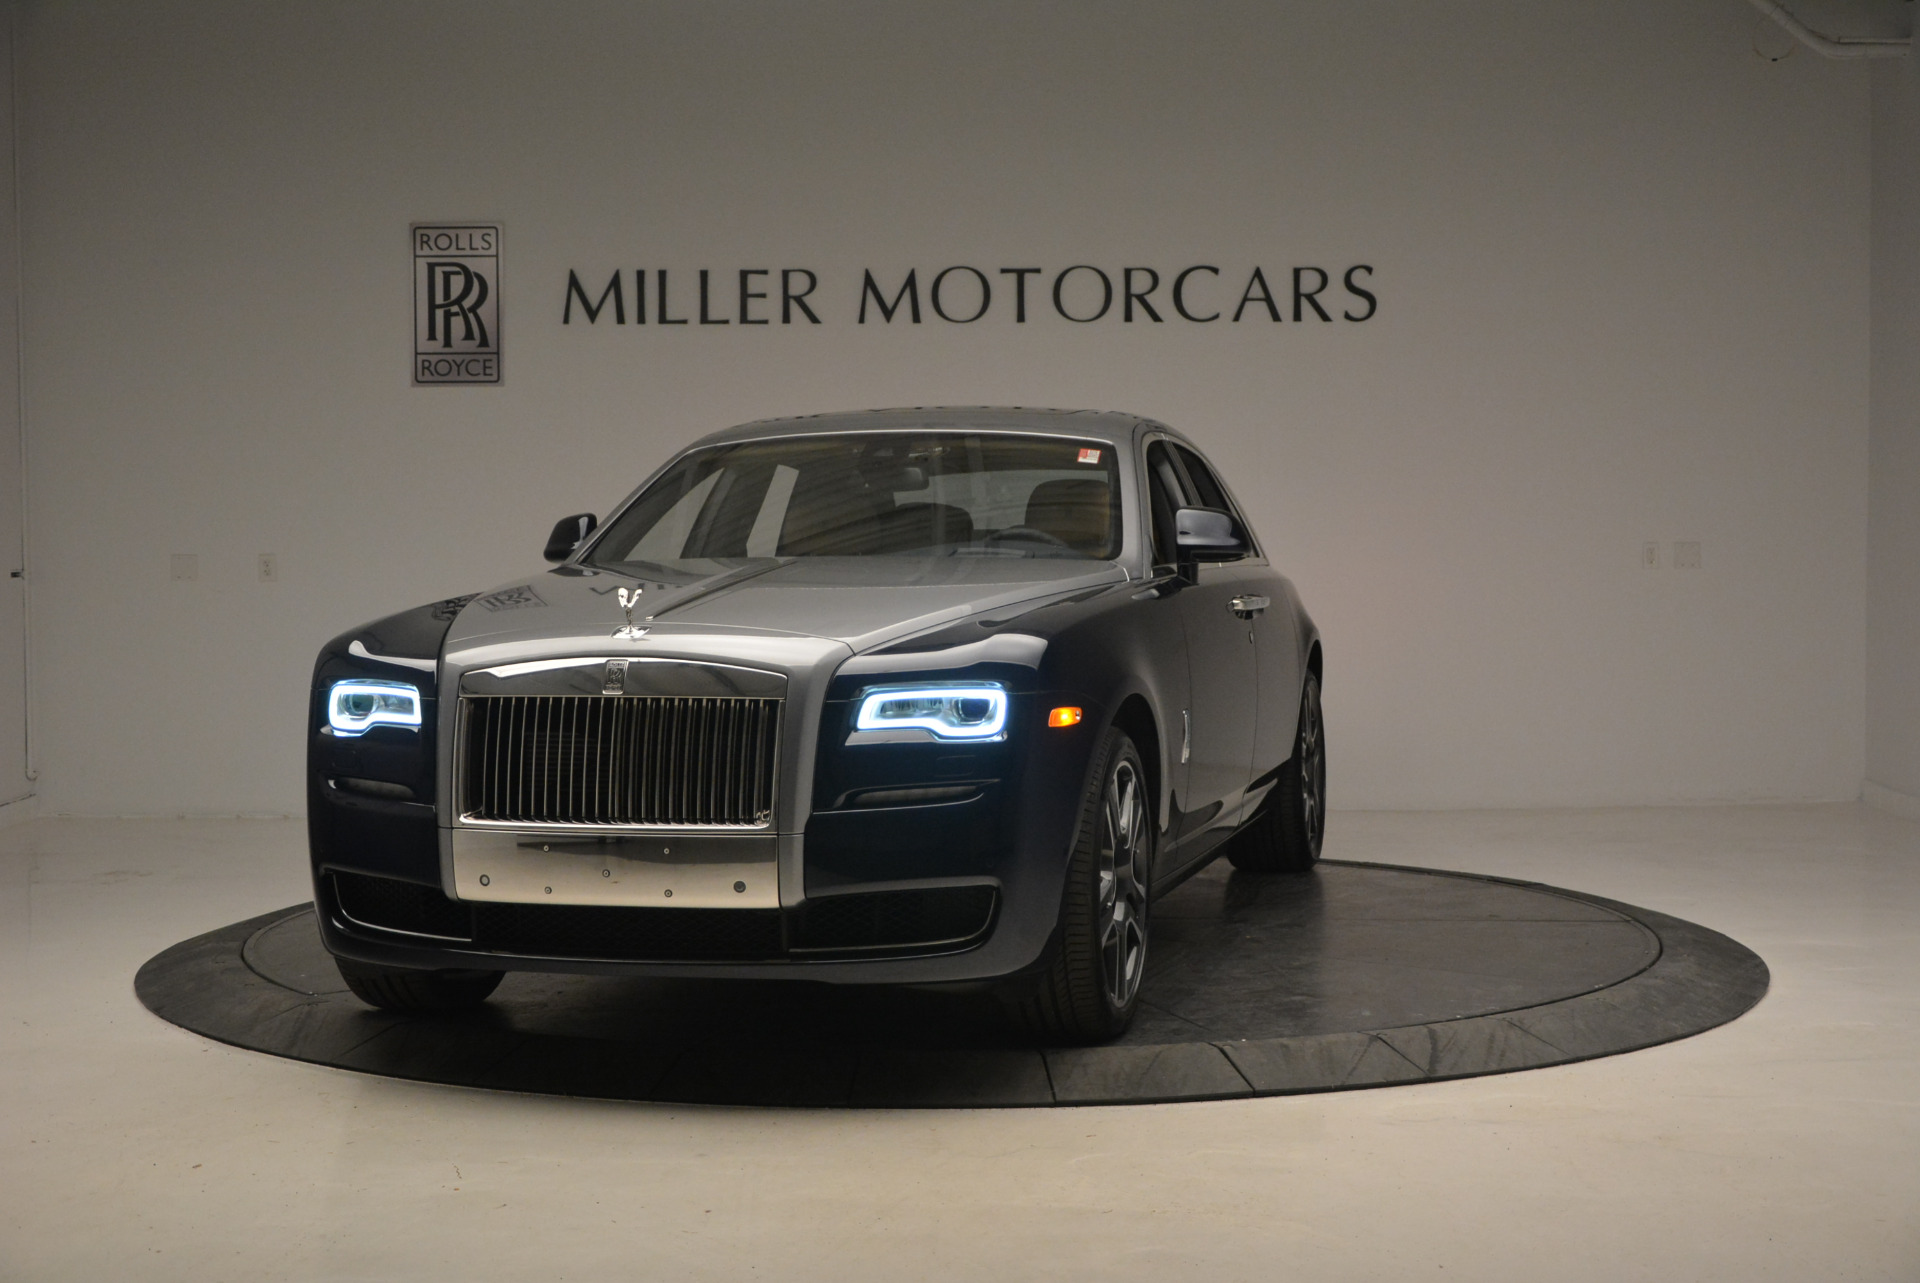 New 2017 Rolls-Royce Ghost for sale Sold at Rolls-Royce Motor Cars Greenwich in Greenwich CT 06830 1